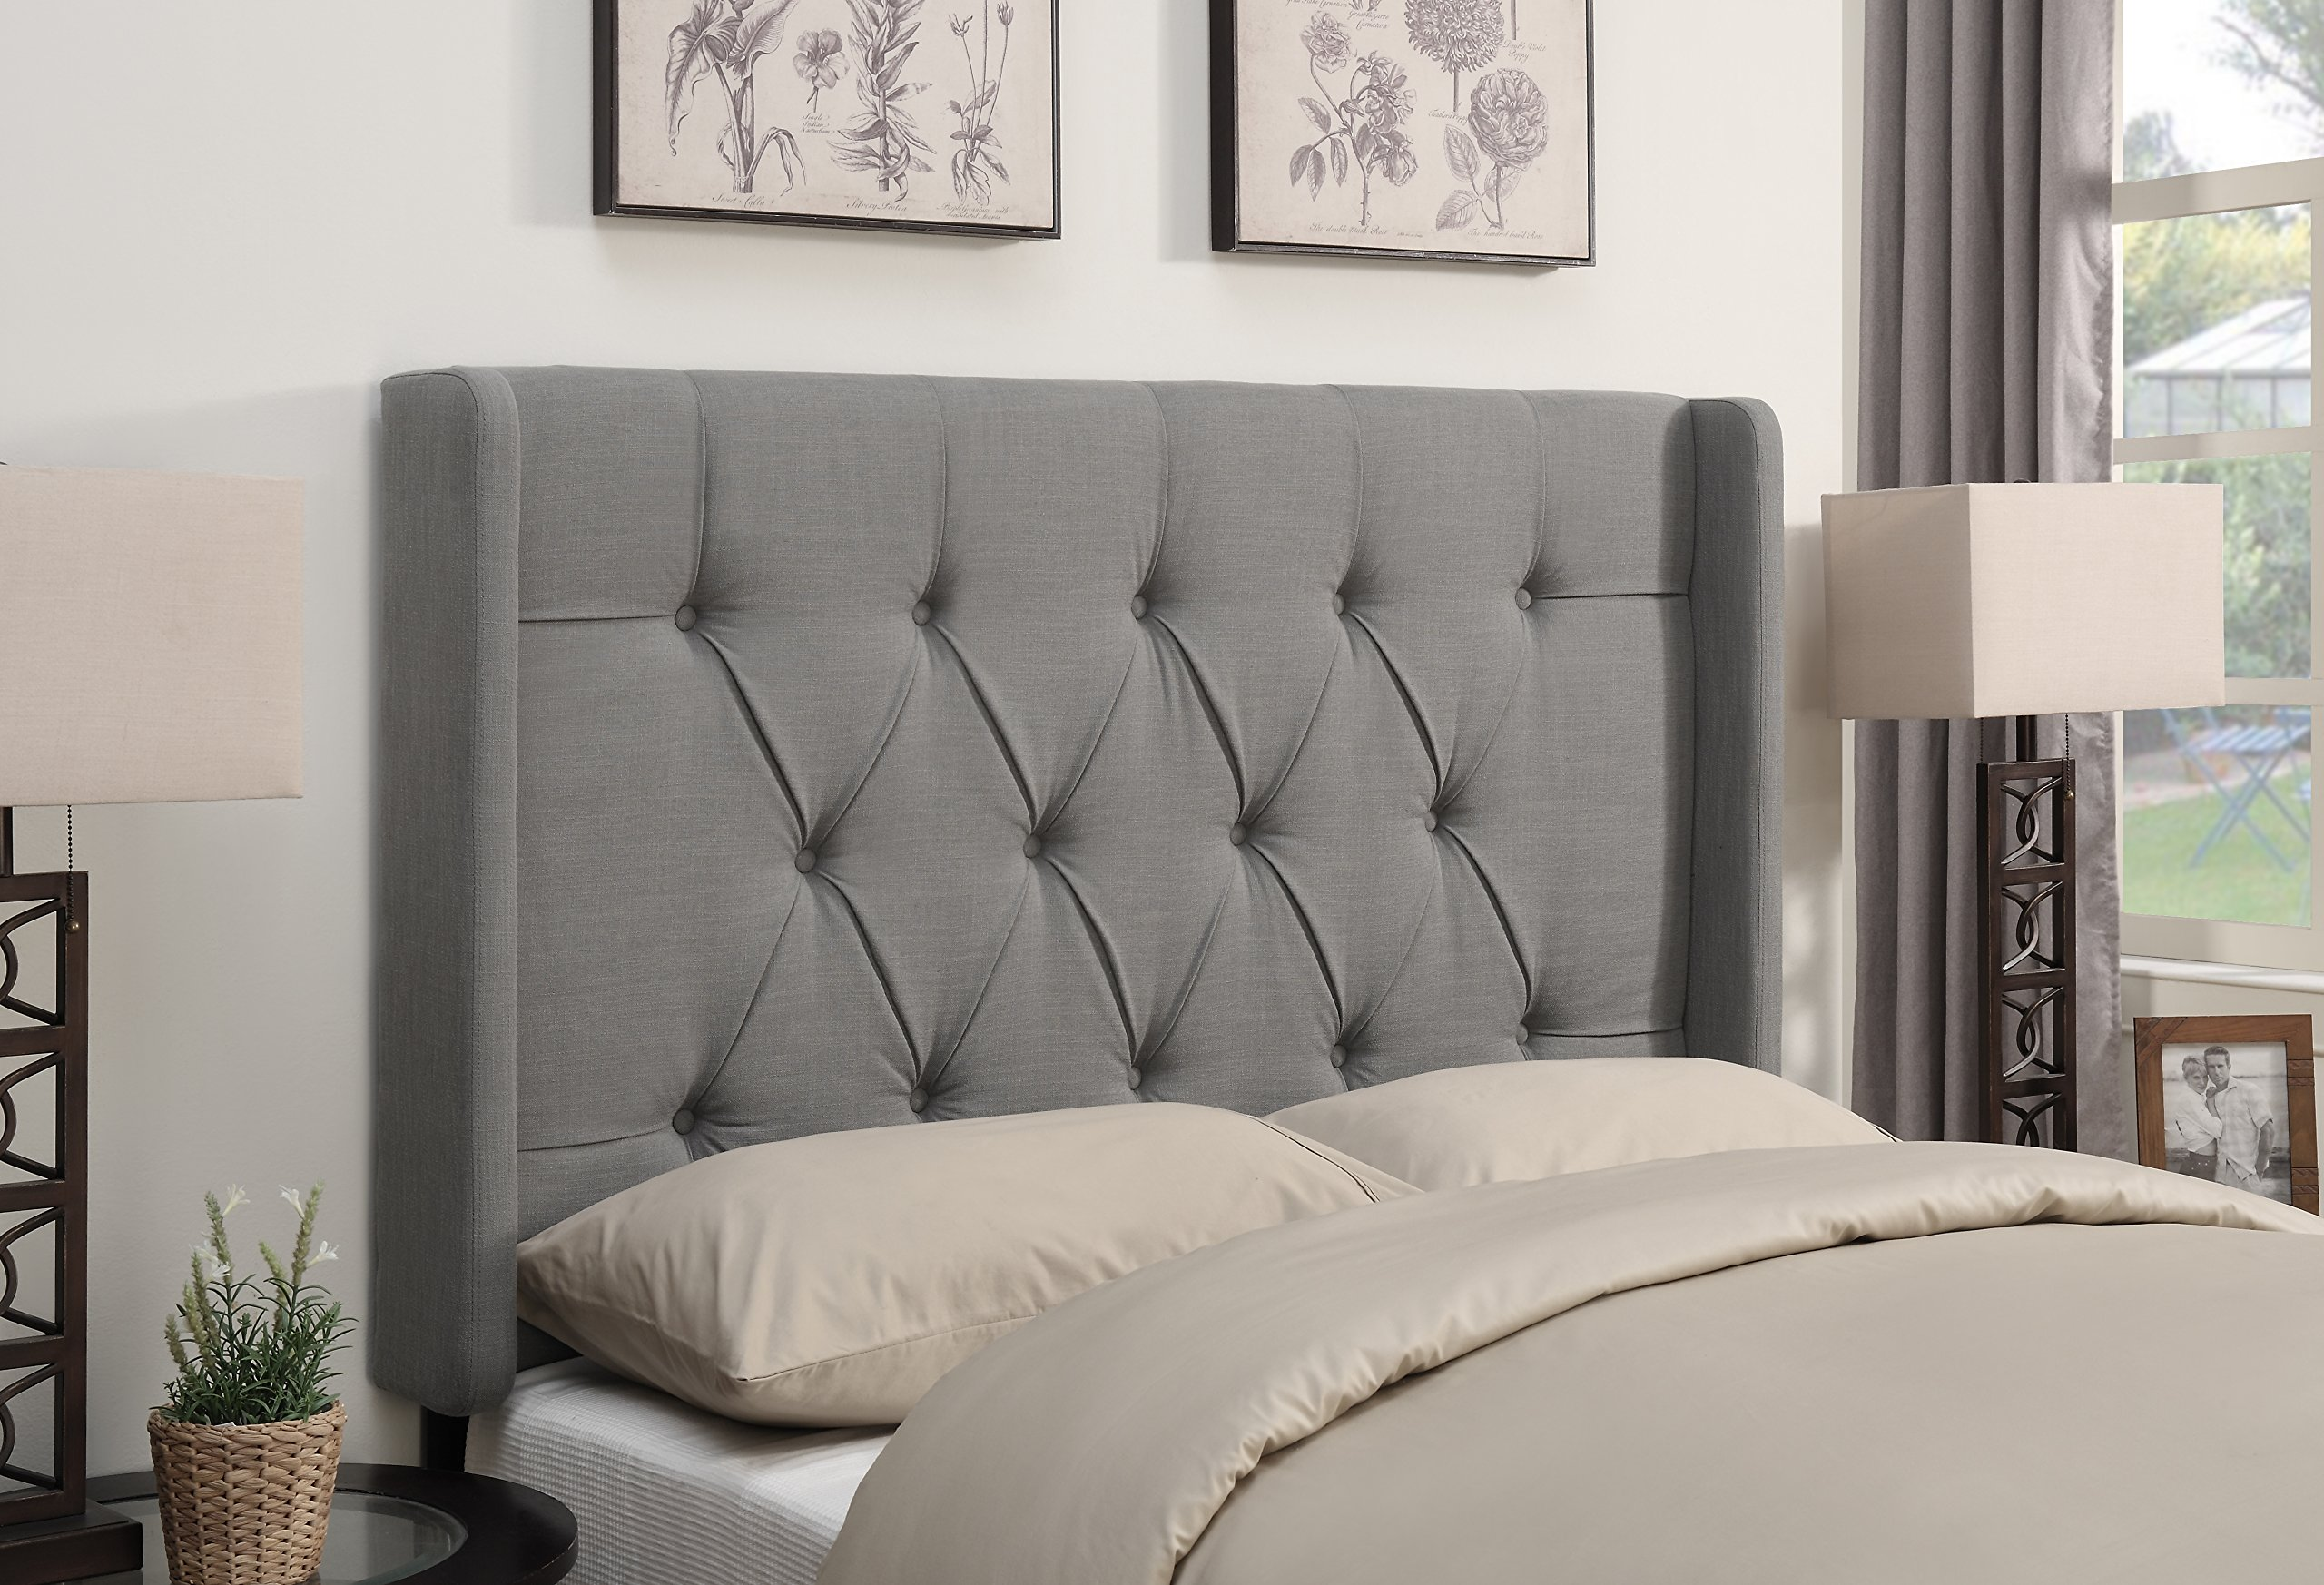 Pulaski Shelter Button Tufted Upholstered Headboard, Ash, King by Pulaski